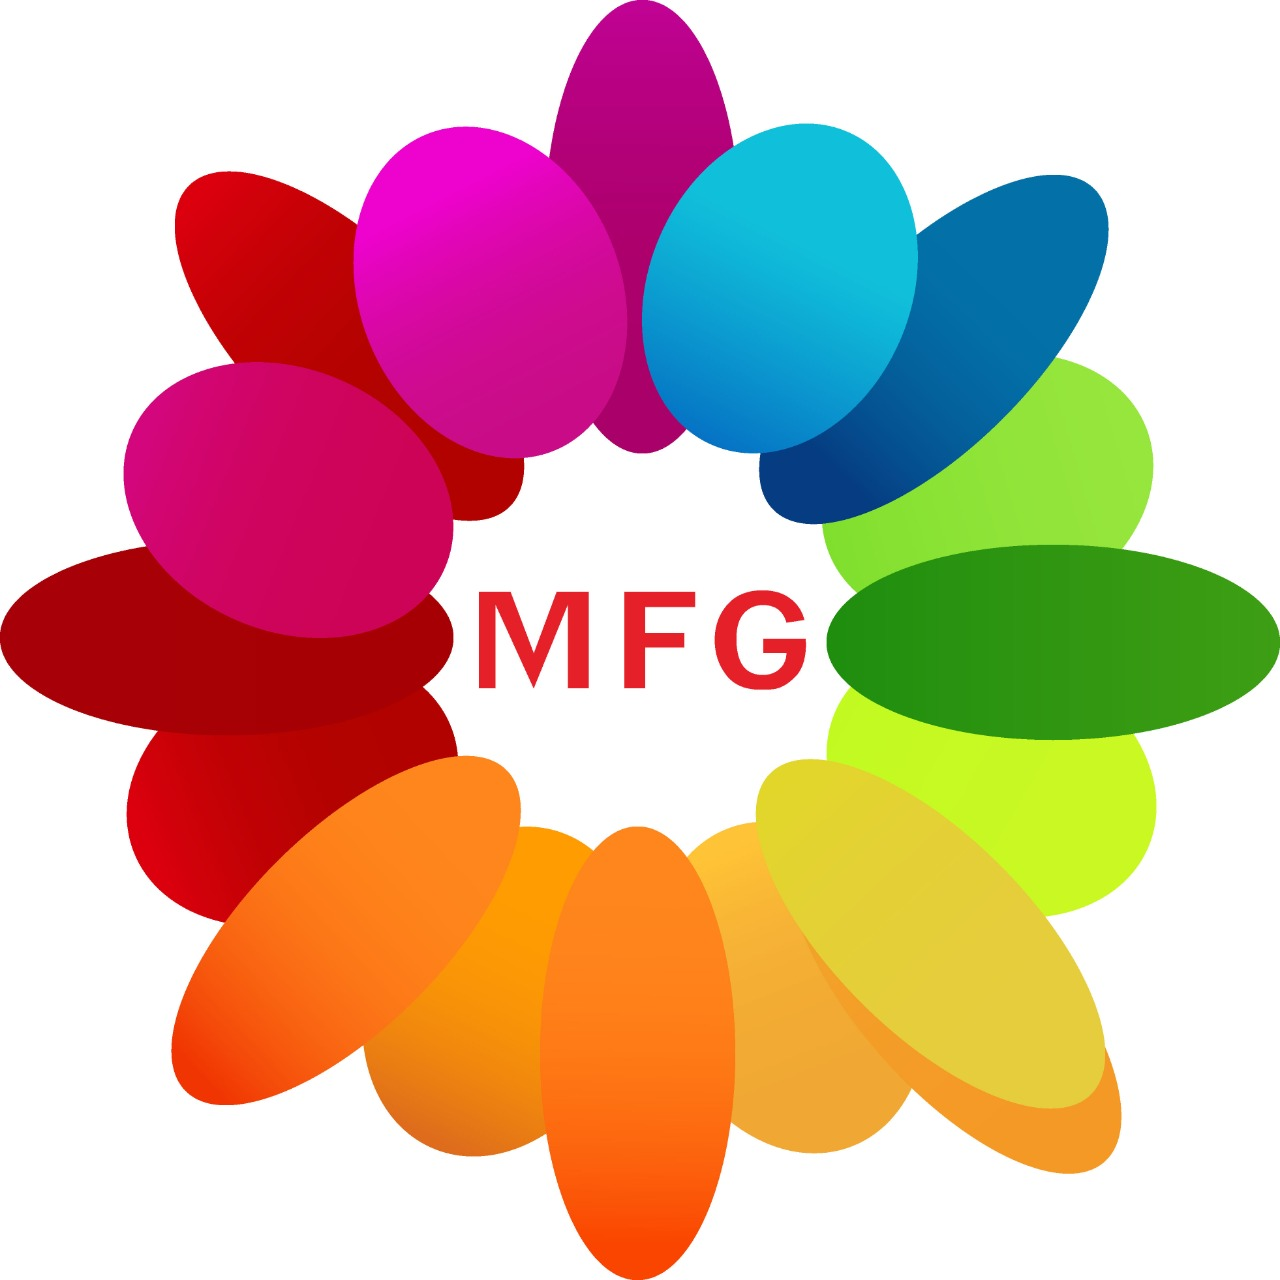 Bunch of orchids with fresh cream 1 kg butterscotch cake with a cute 6 inch teddy bear(Eggless)